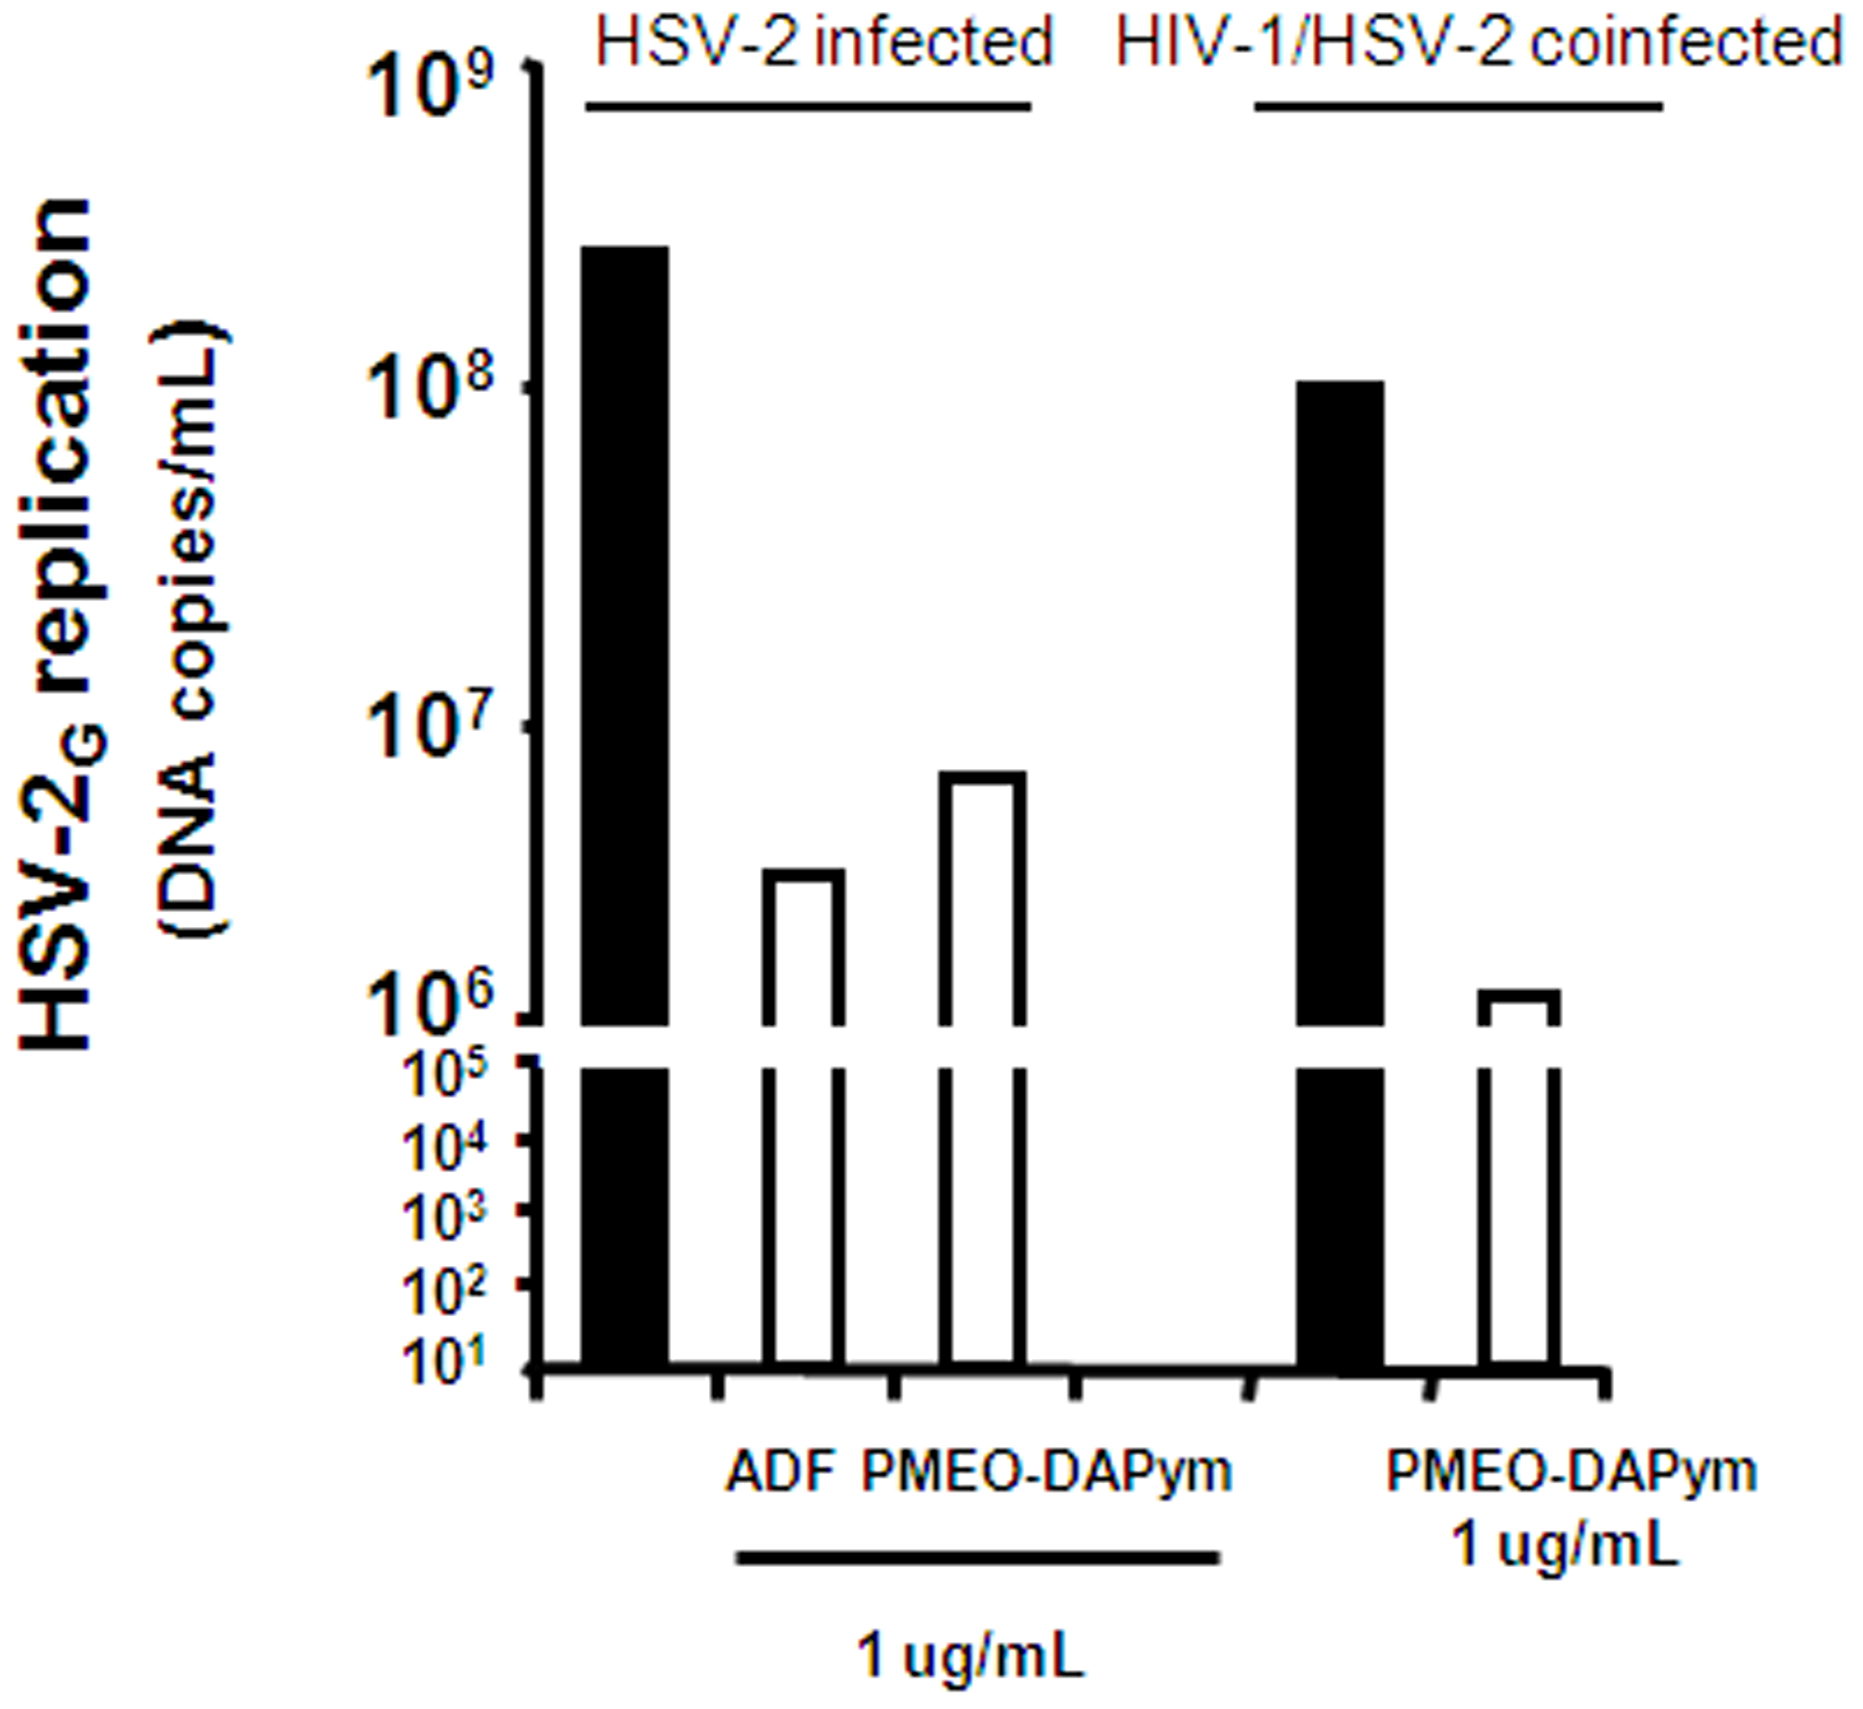 Suppression of HSV-2 in human cervico-vaginal tissues by adefovir and PMEO-DAPym.